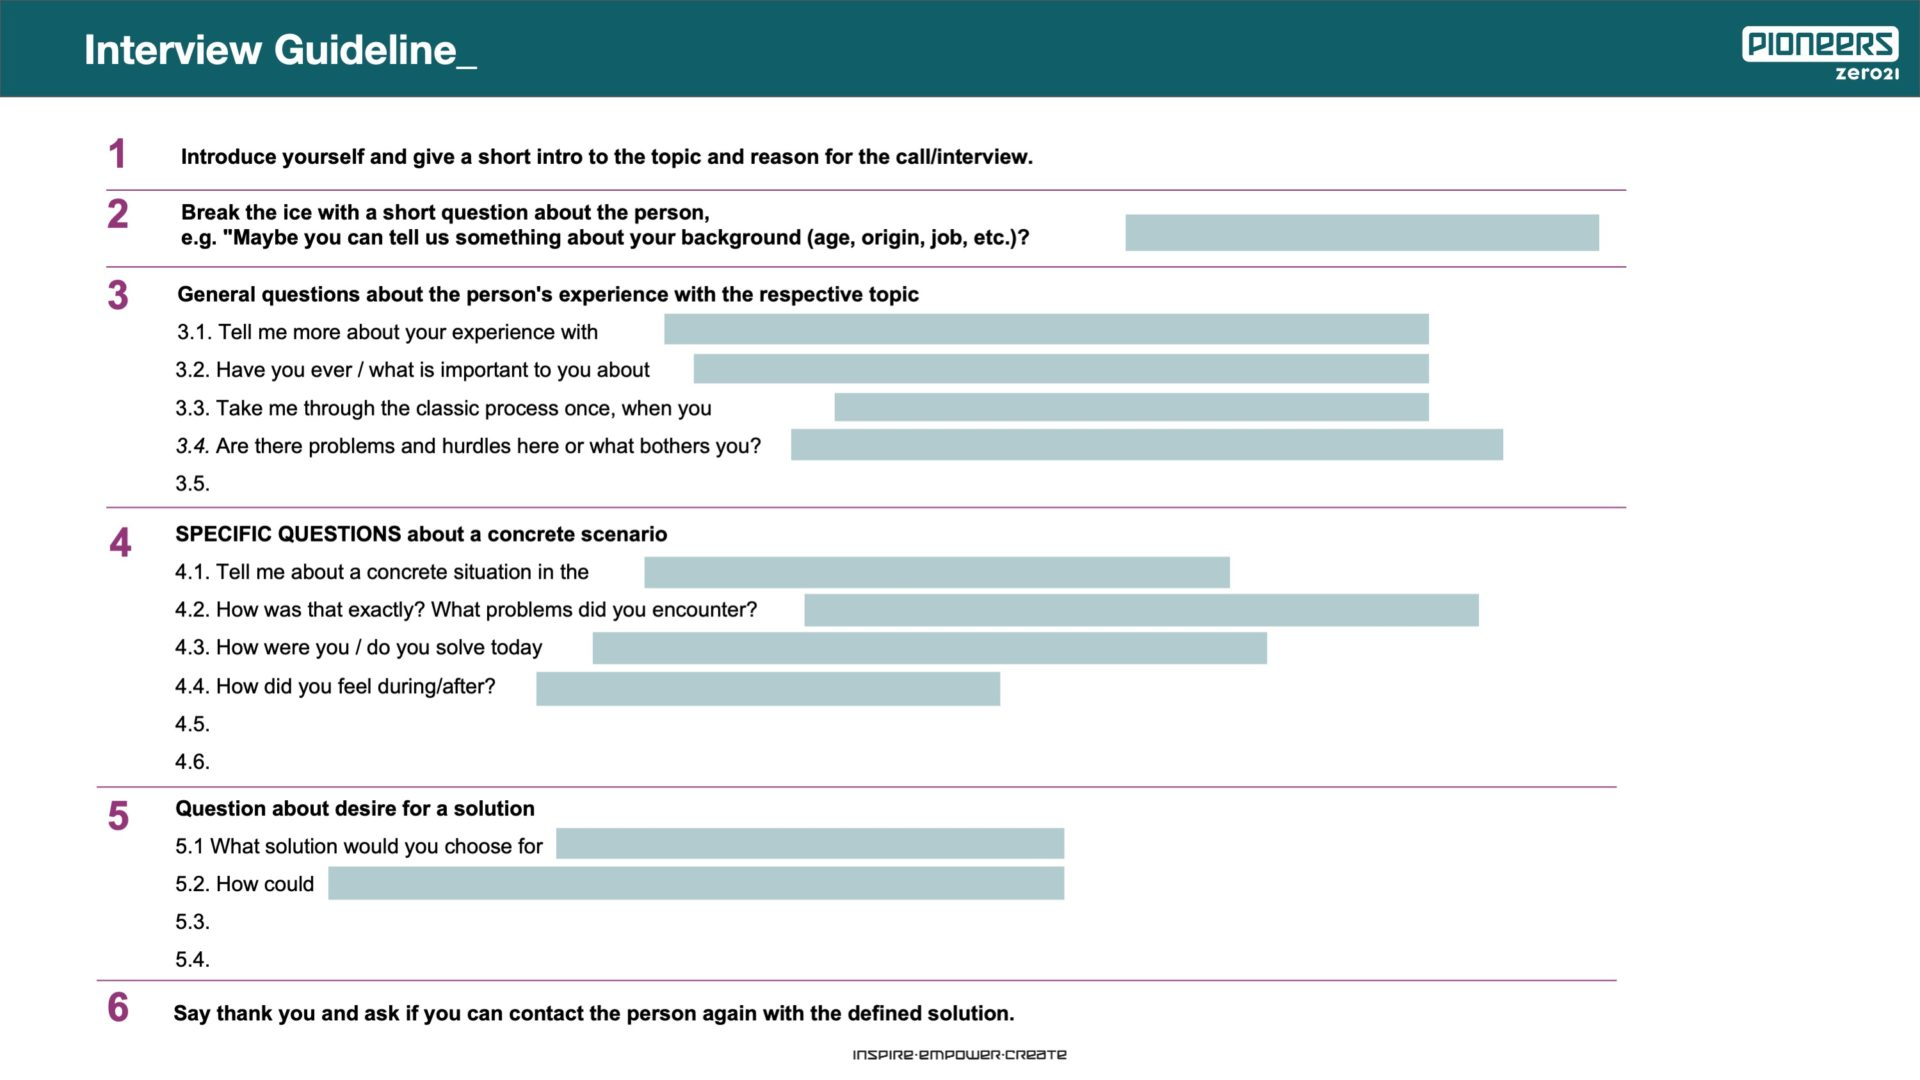 Interview Guideline Canvas